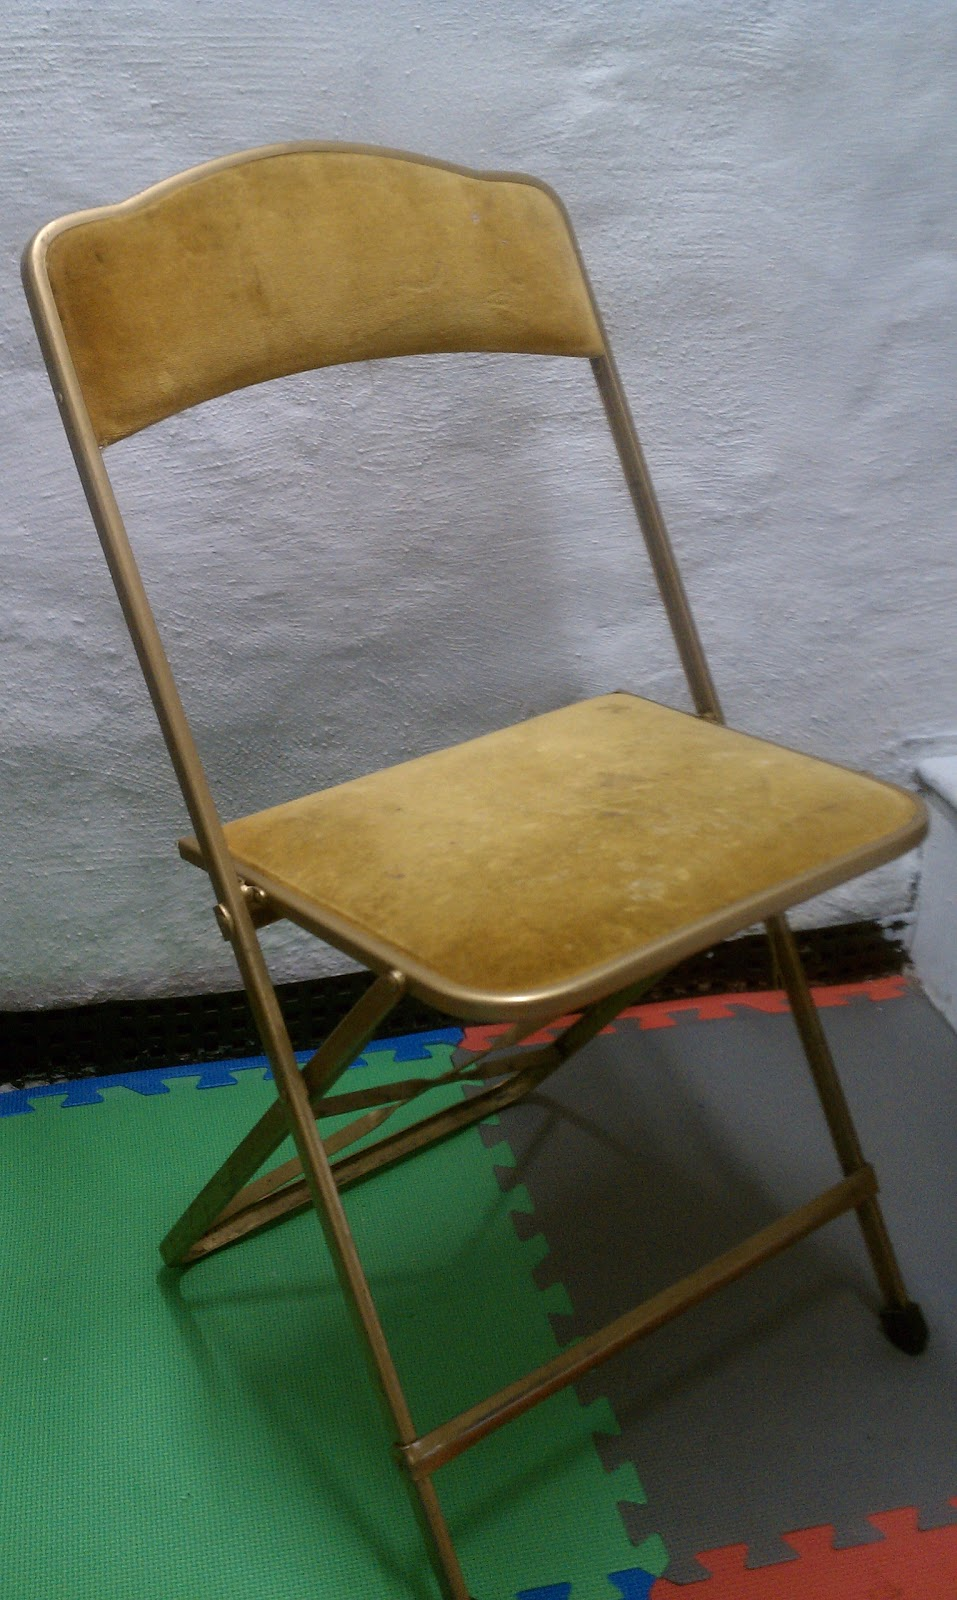 Whole Phamily The Best Folding Chair In The Western World